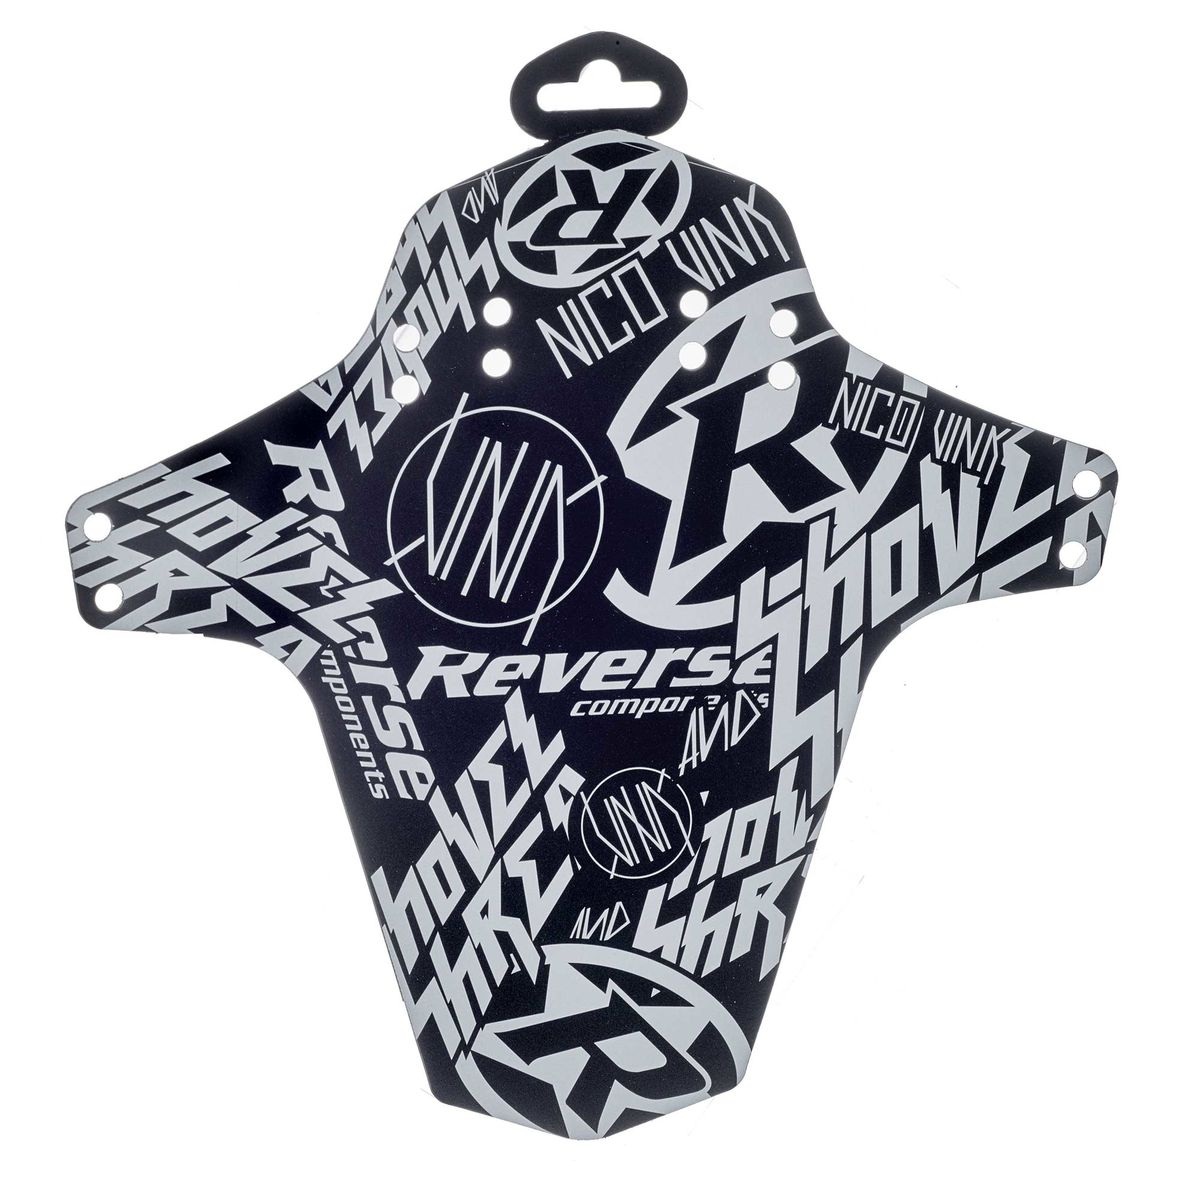 REVERSE Nico Vink Stickerbomb mudguard for suspension fork or rear wheel